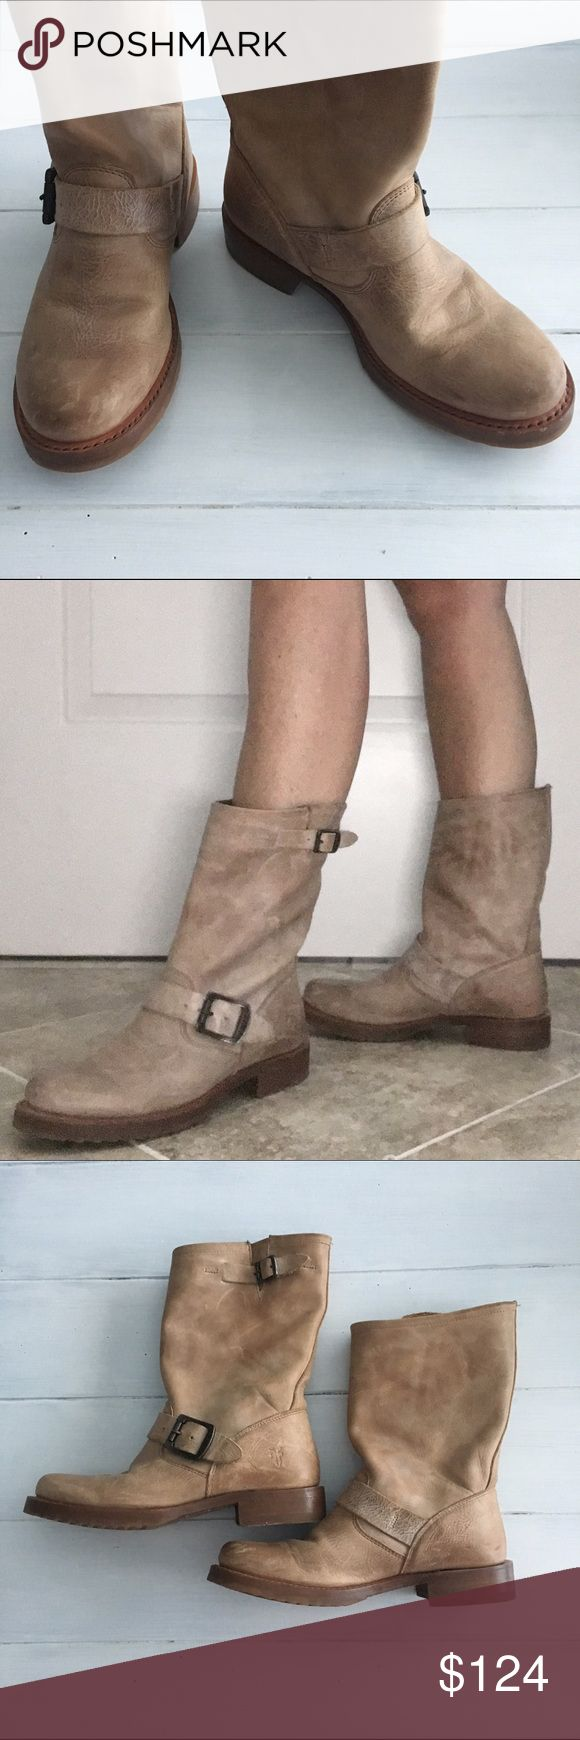 FRYE Veronica Short Boot FRYE Benchcrafted since 1863. I love the smell of leather. Veronica Short Boot in Tan.  Size 5.5M. Beautifully weathered & in great condition. Frye Shoes